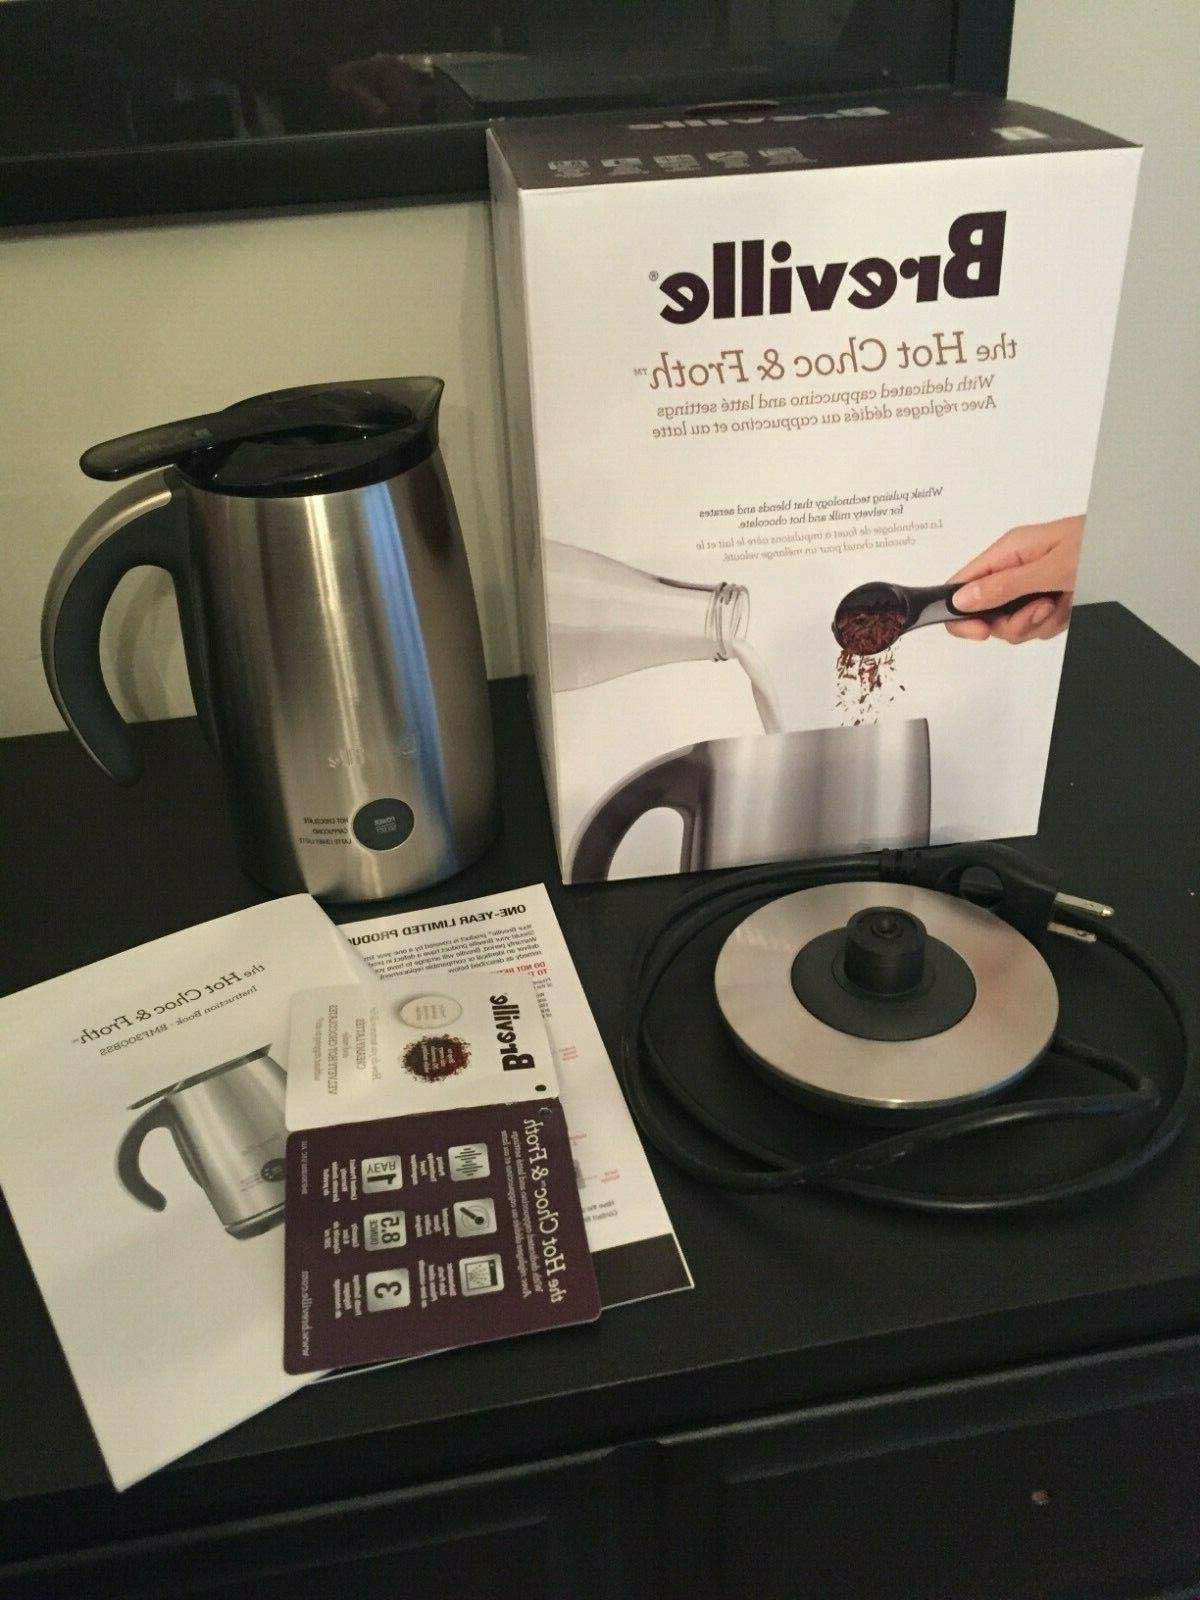 hot chocolate and milk frother brushed stainless